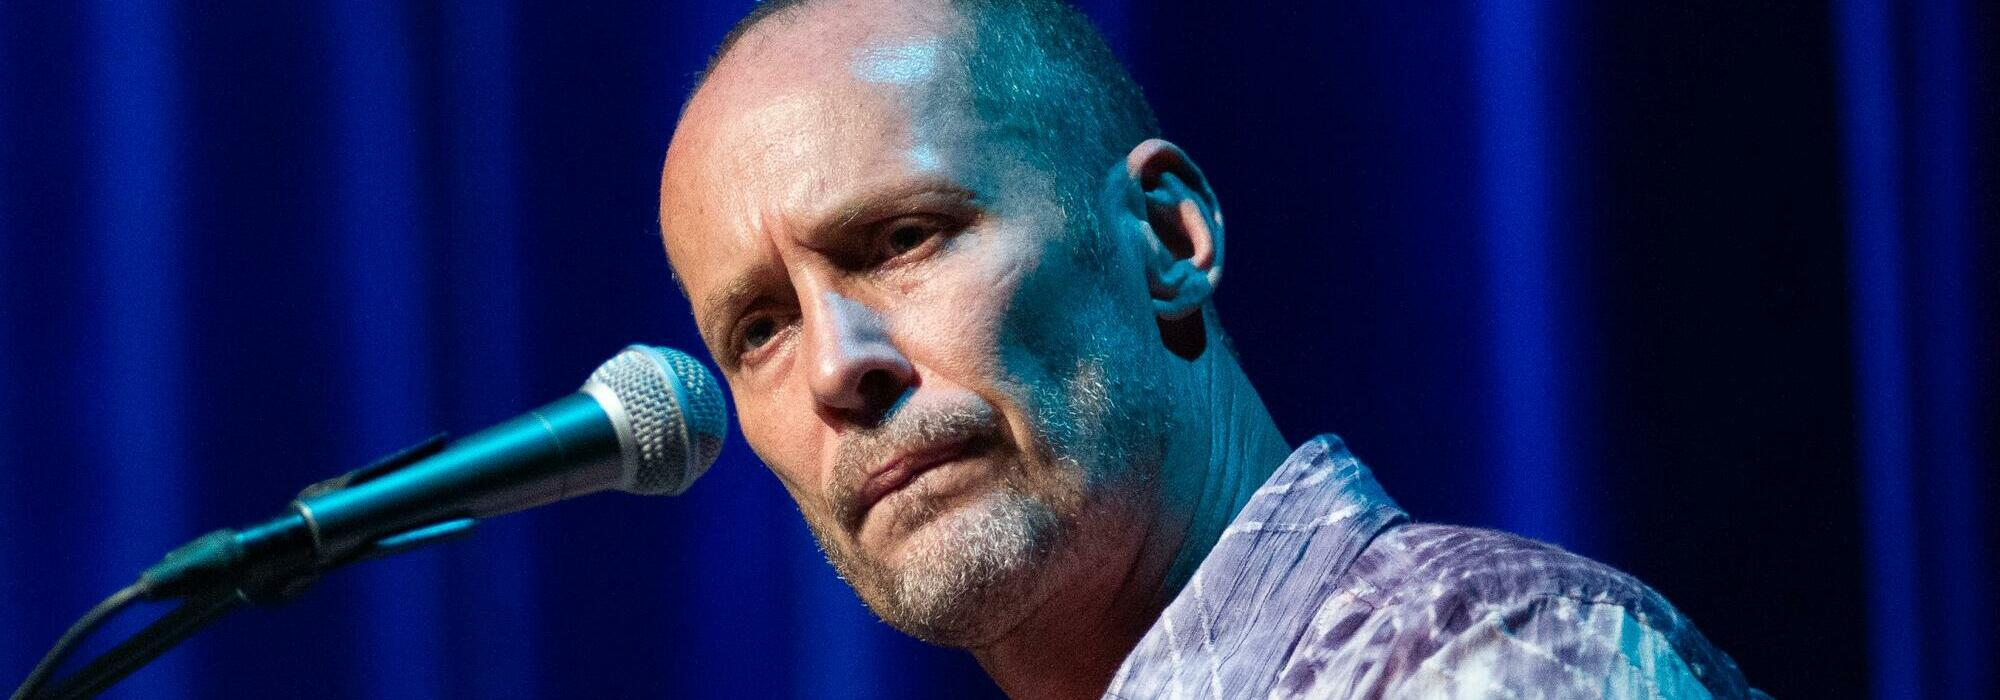 A Paul Thorn live event